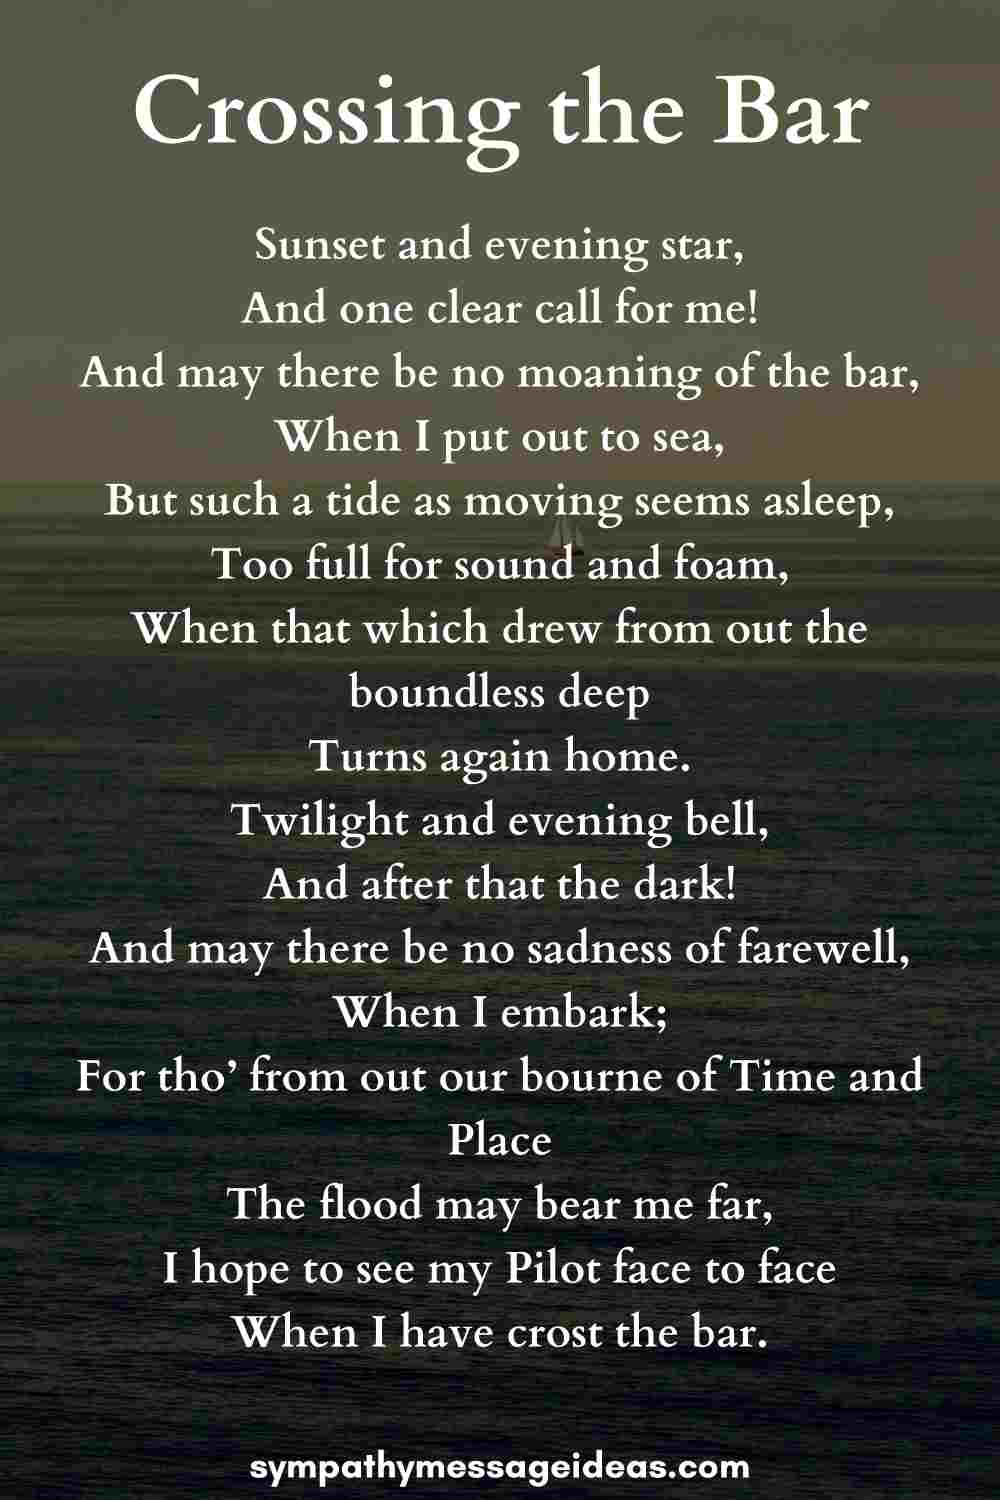 crossing the bar funeral poem for sailors